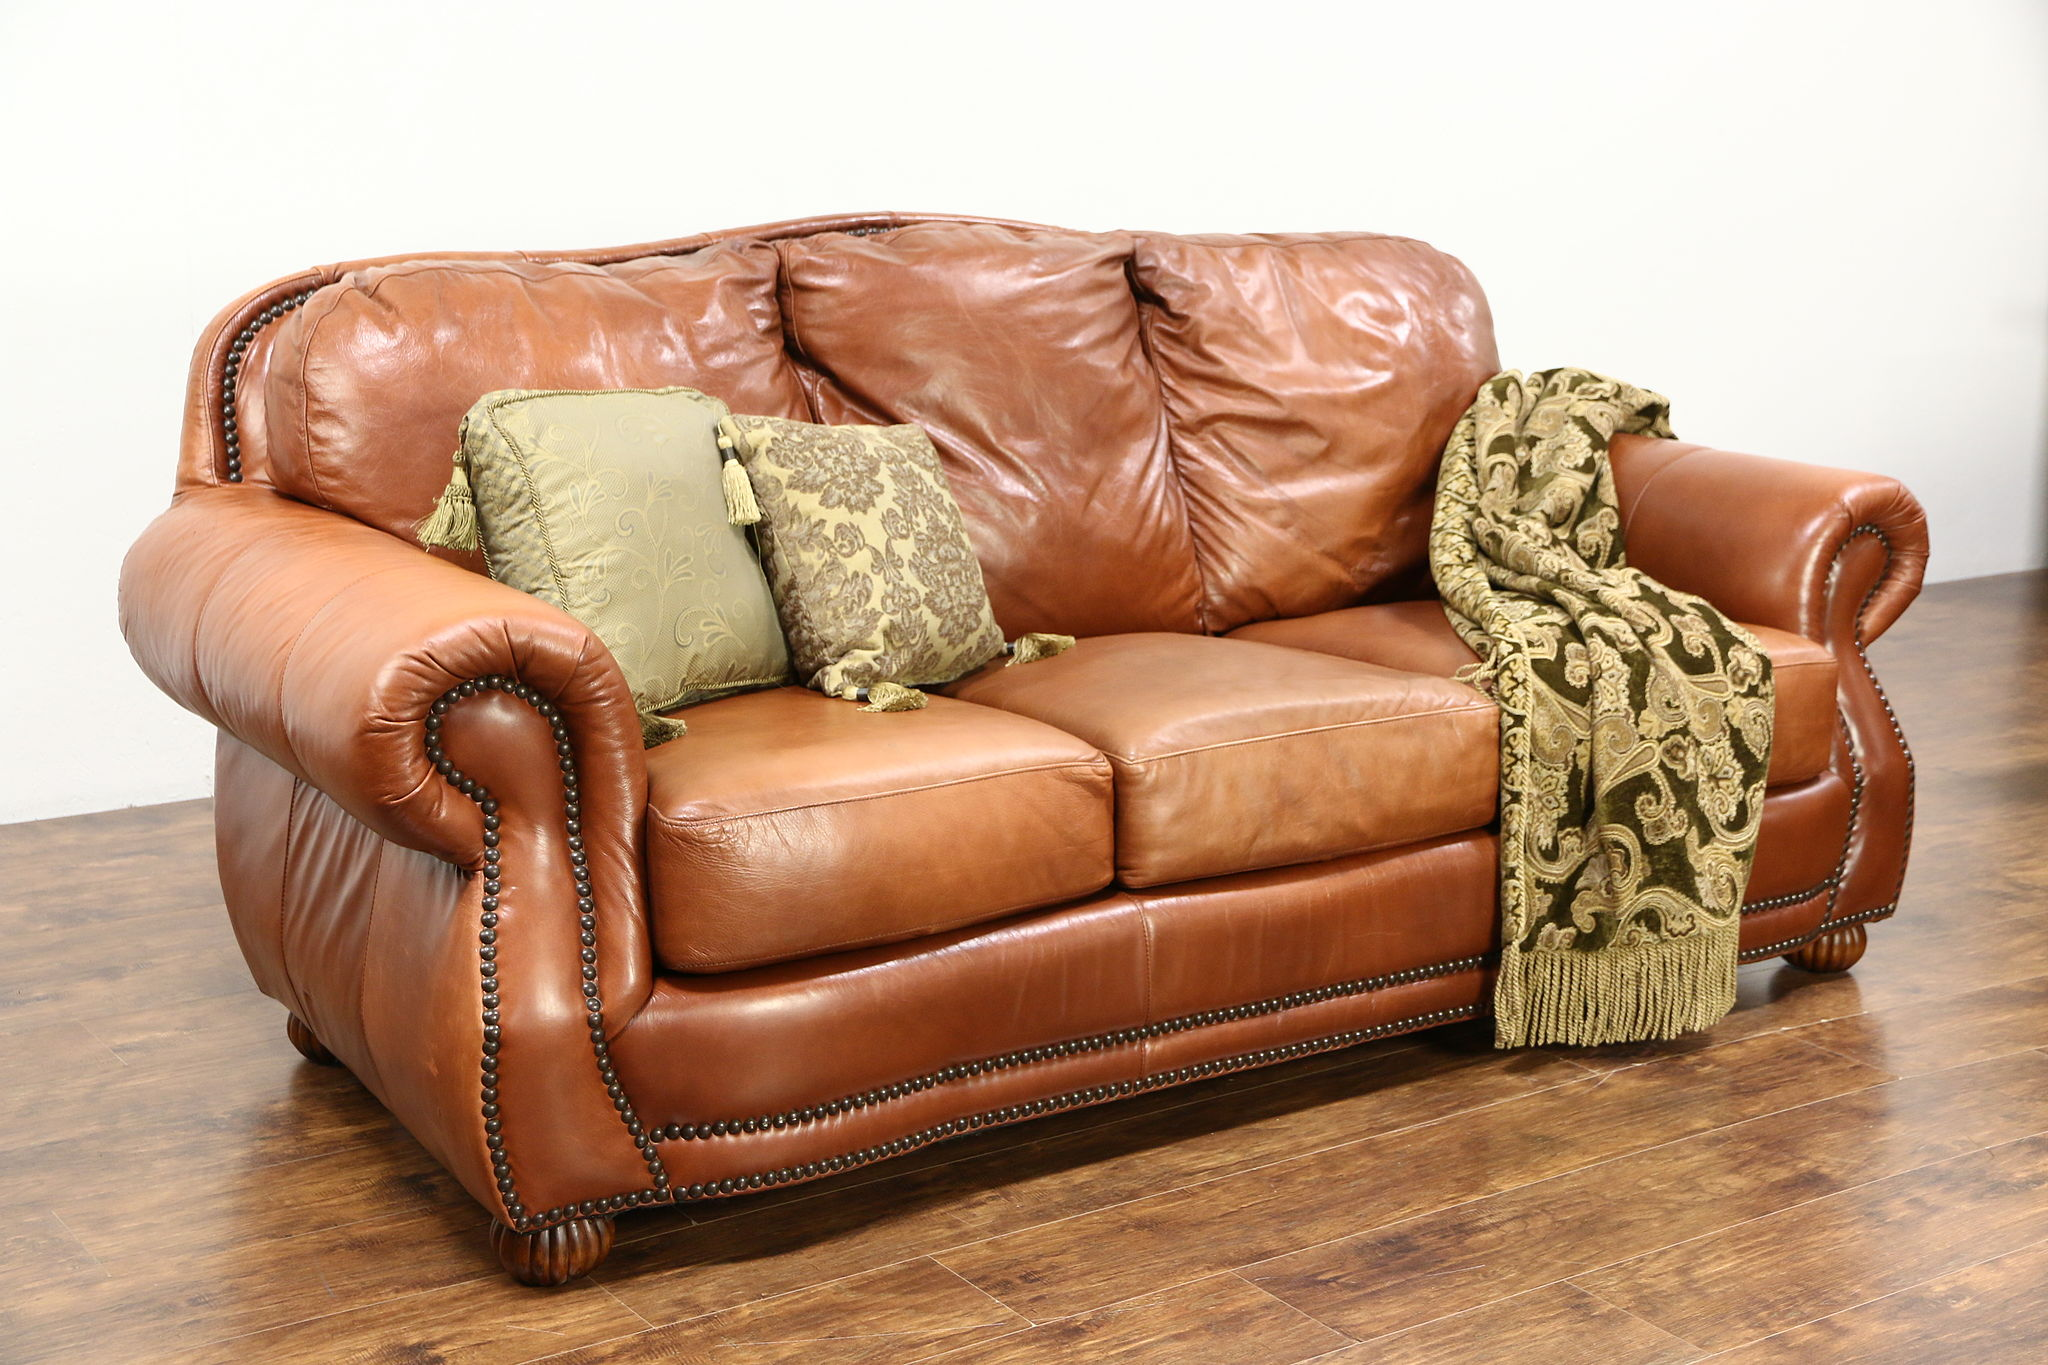 SOLD - Leather Sofa, Brass Nailhead Trim, Viewpoint Leather Works ...